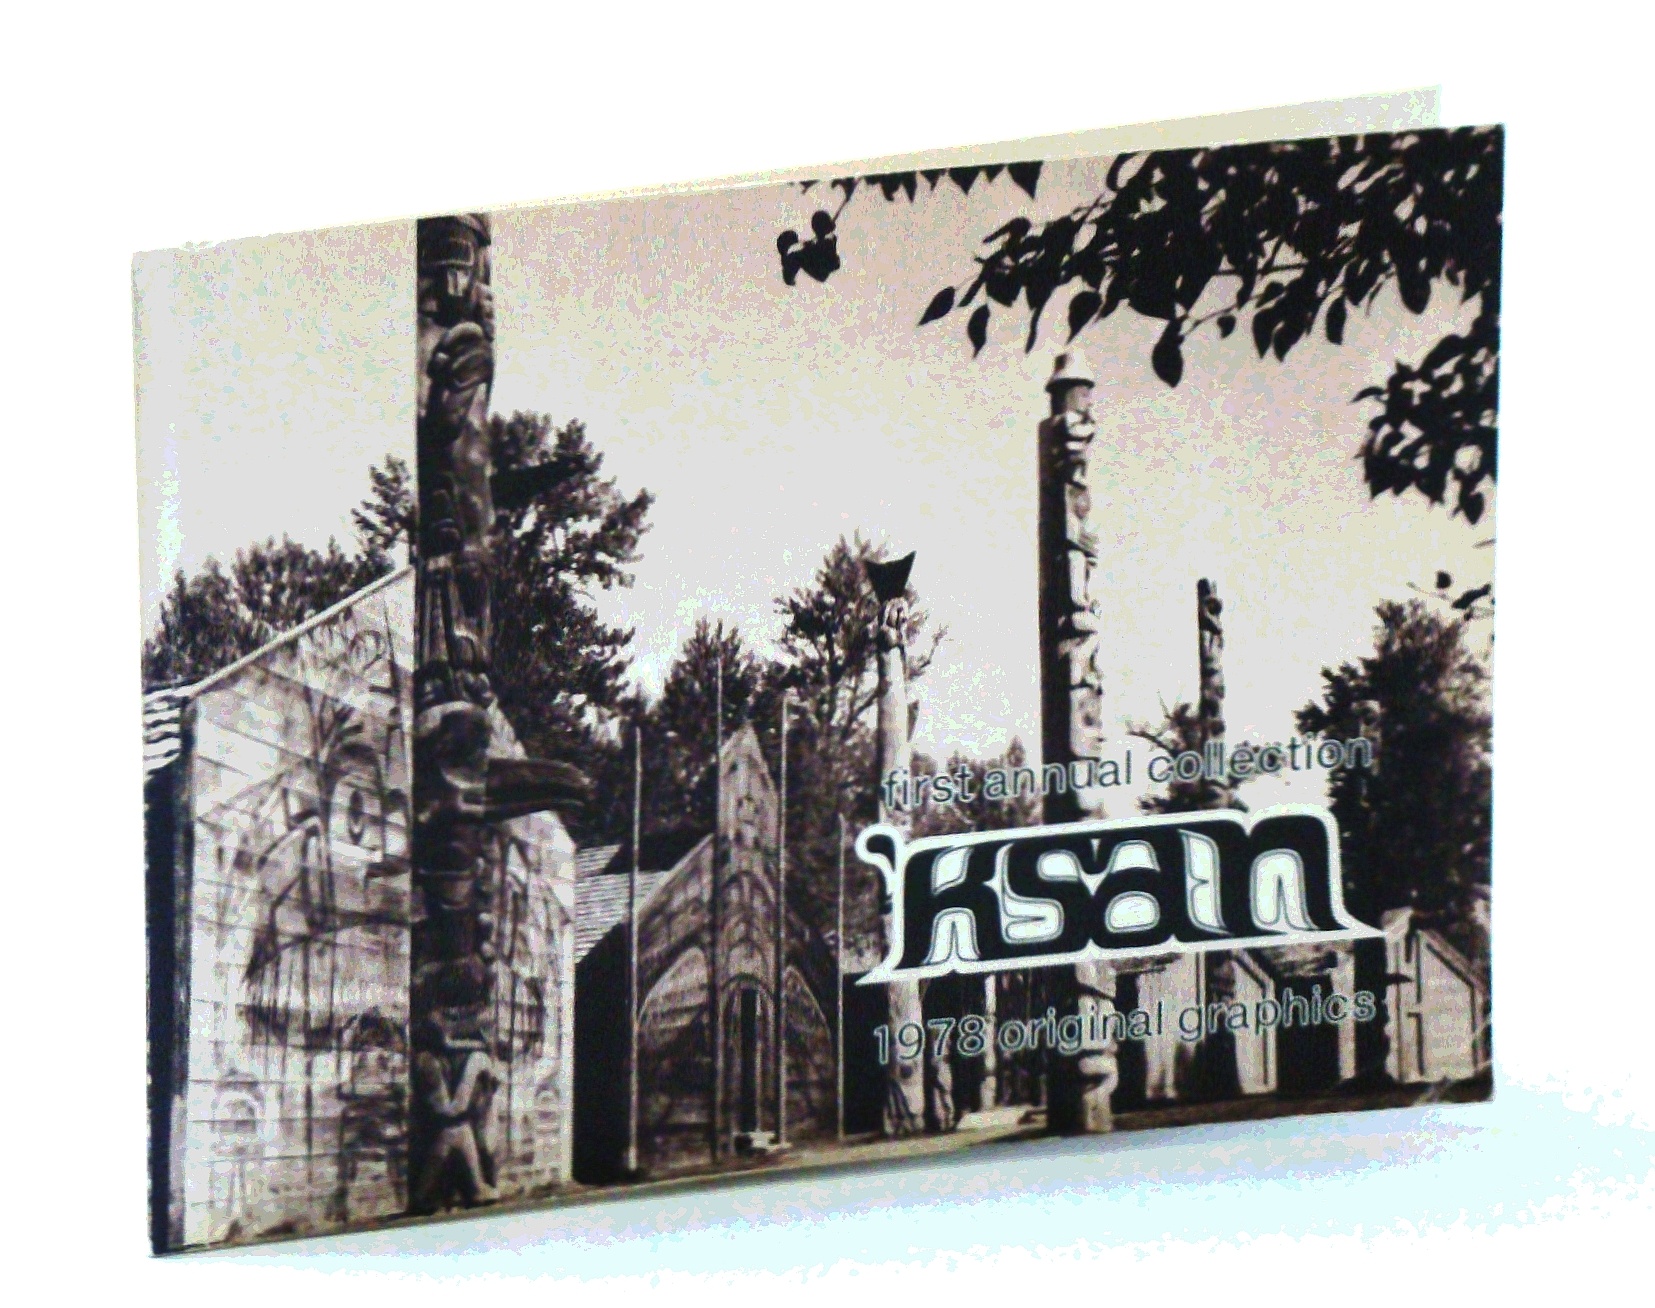 Image for First Annual Collection KSAN 1978: Original Graphics